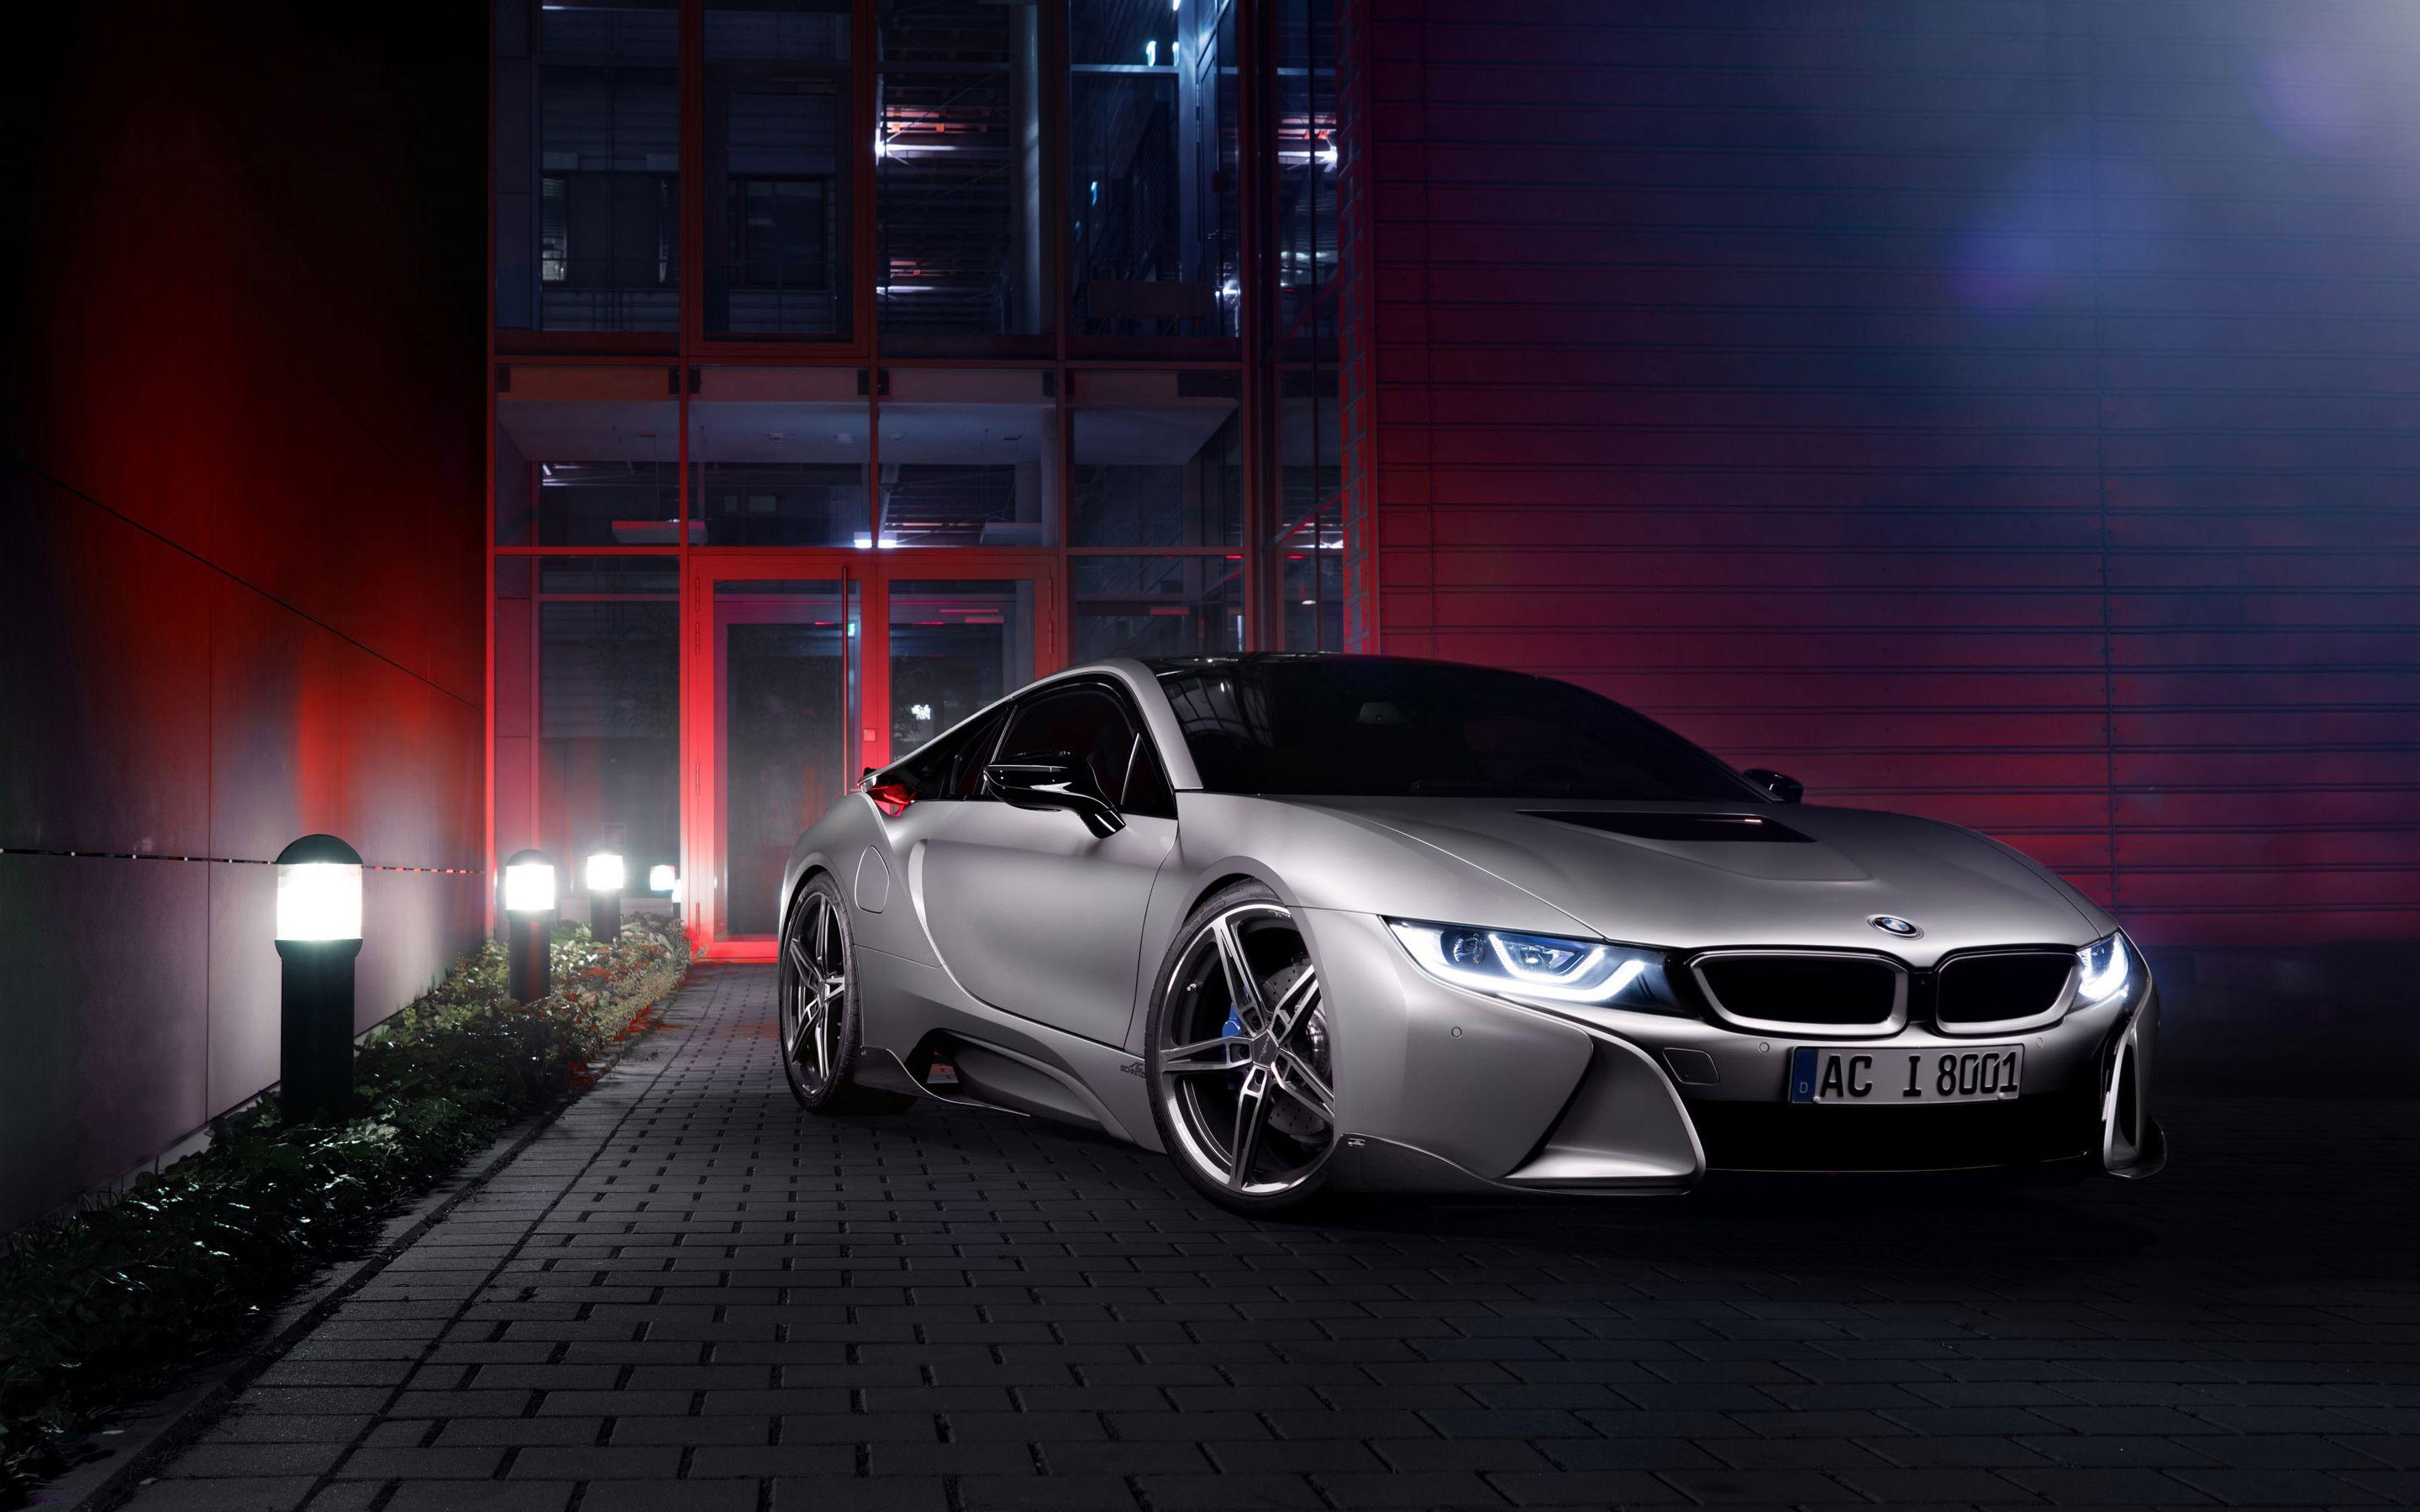 Bmw I8 Wallpapers, Excellent Bmw I8 Wallpapers